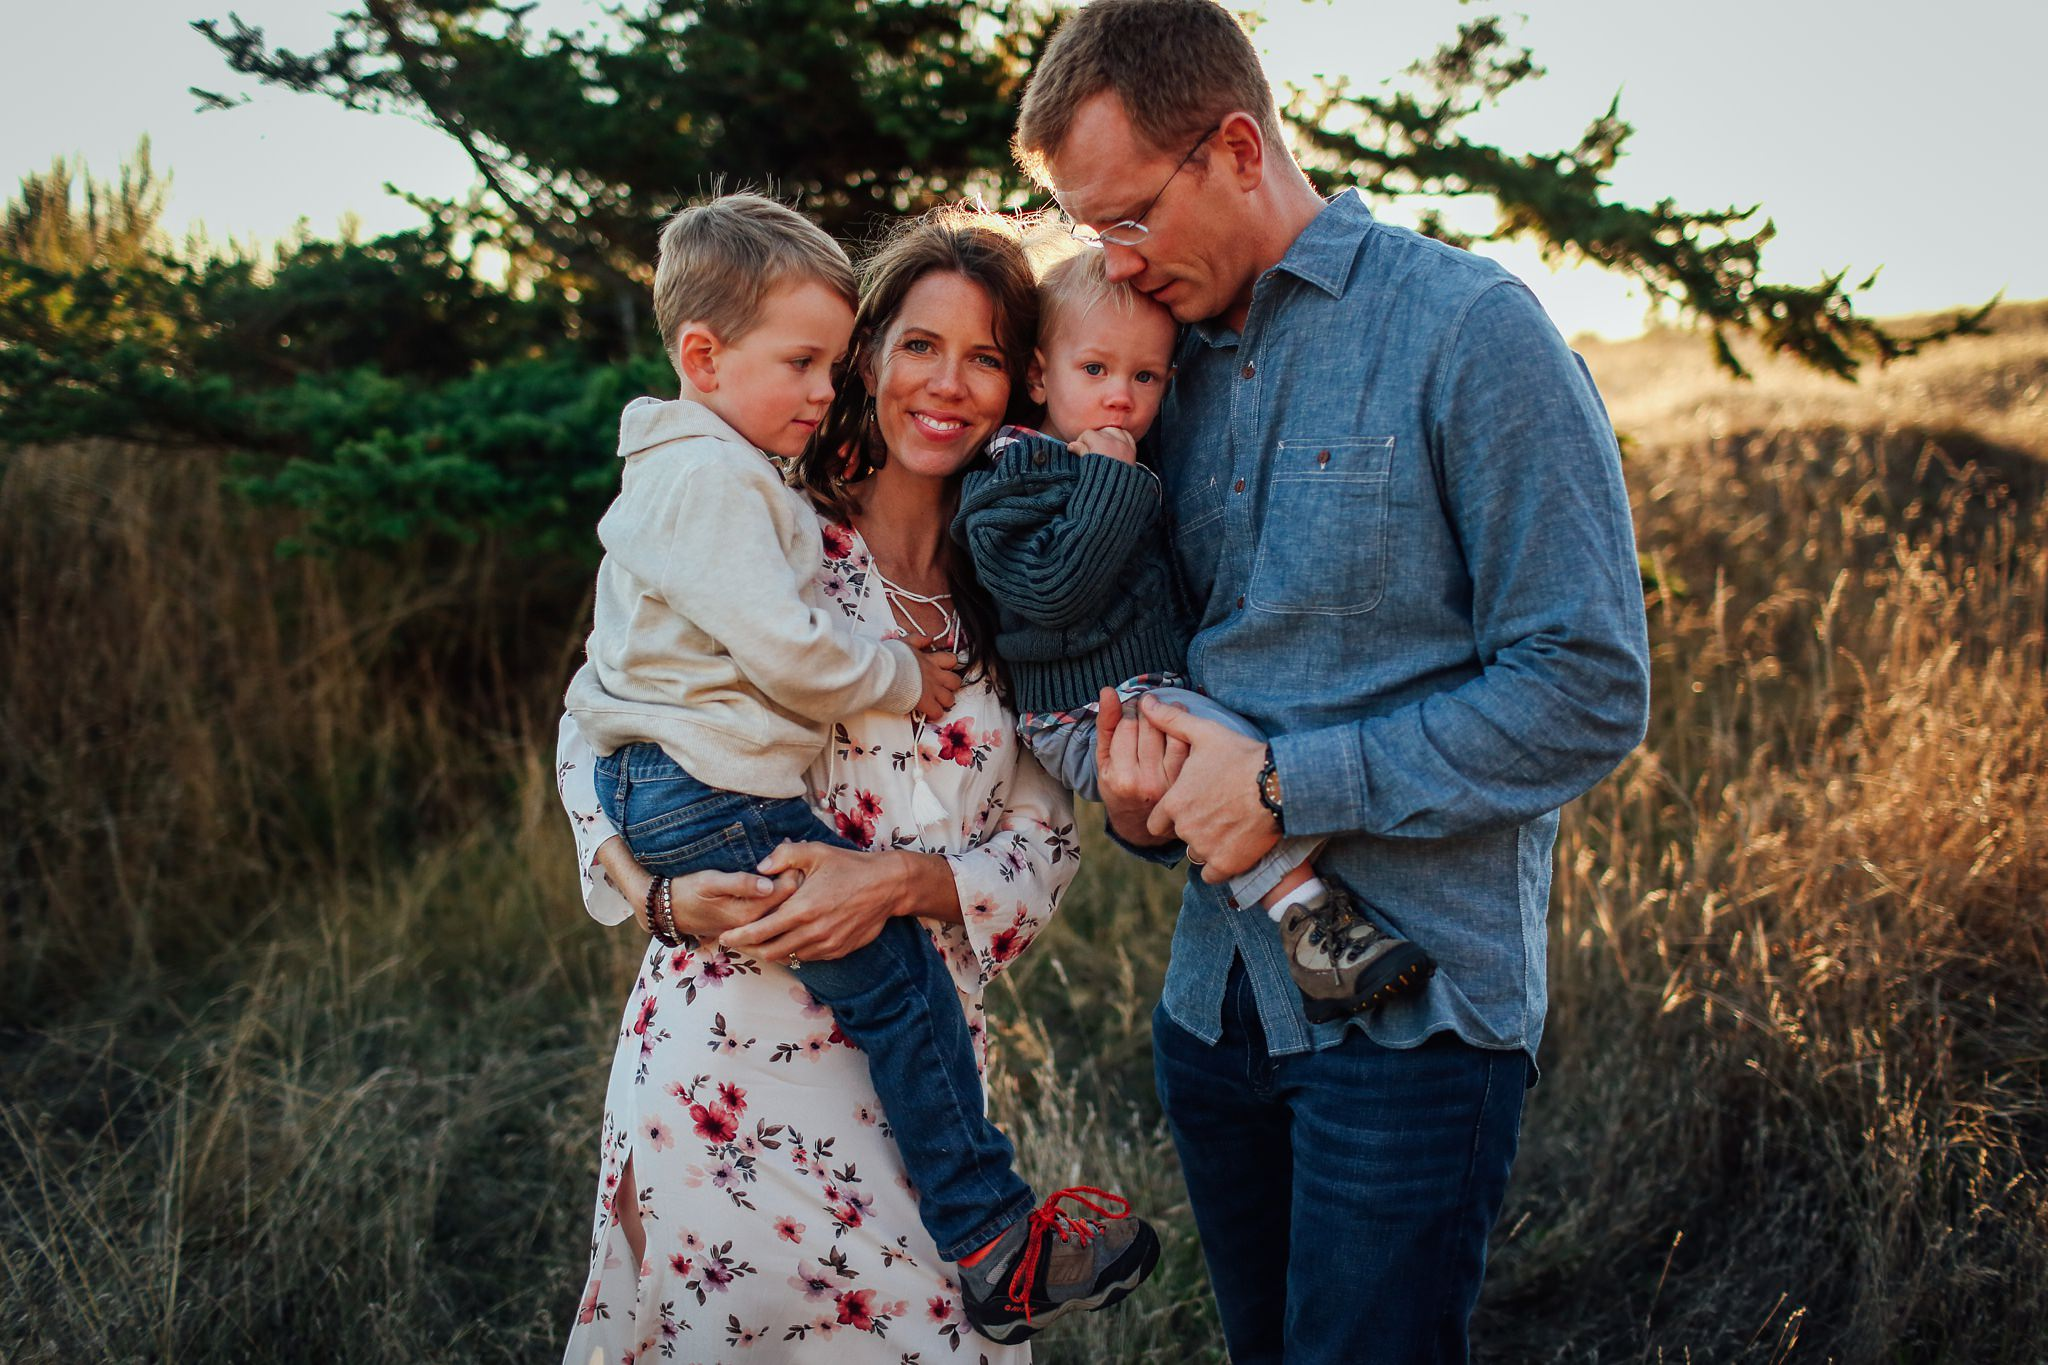 Whidbey-Island-Family-Photographer-Kara-Chappell-Photography_1046.jpg